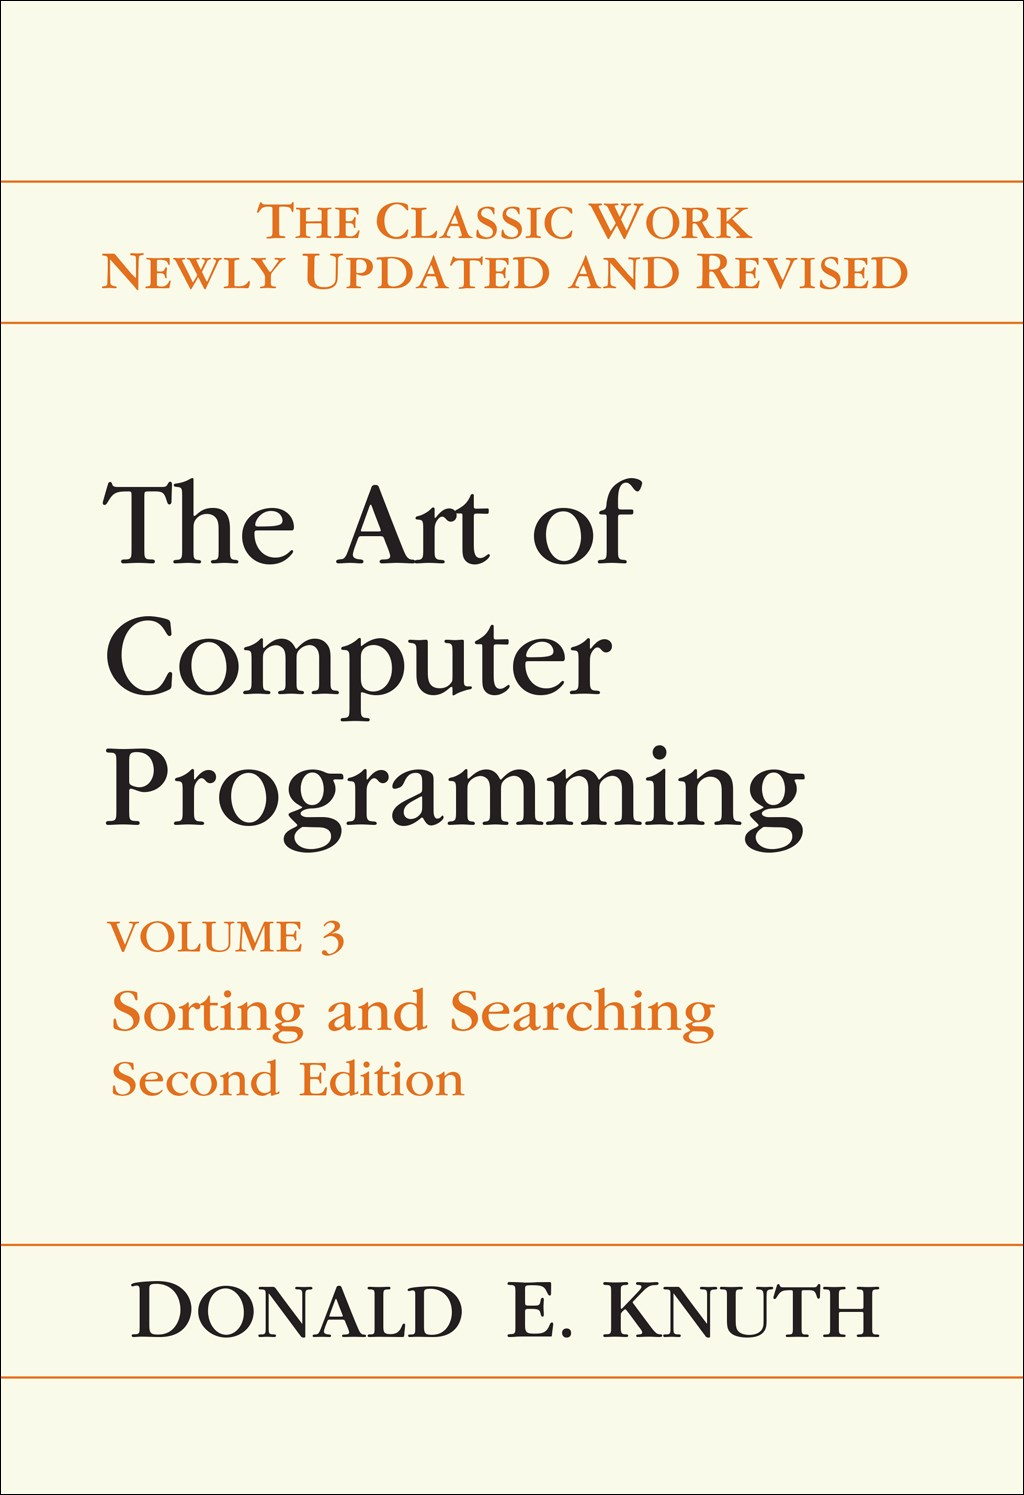 Art of Computer Programming, Volume 3: Sorting and Searching, 2nd Edition, eBook Version